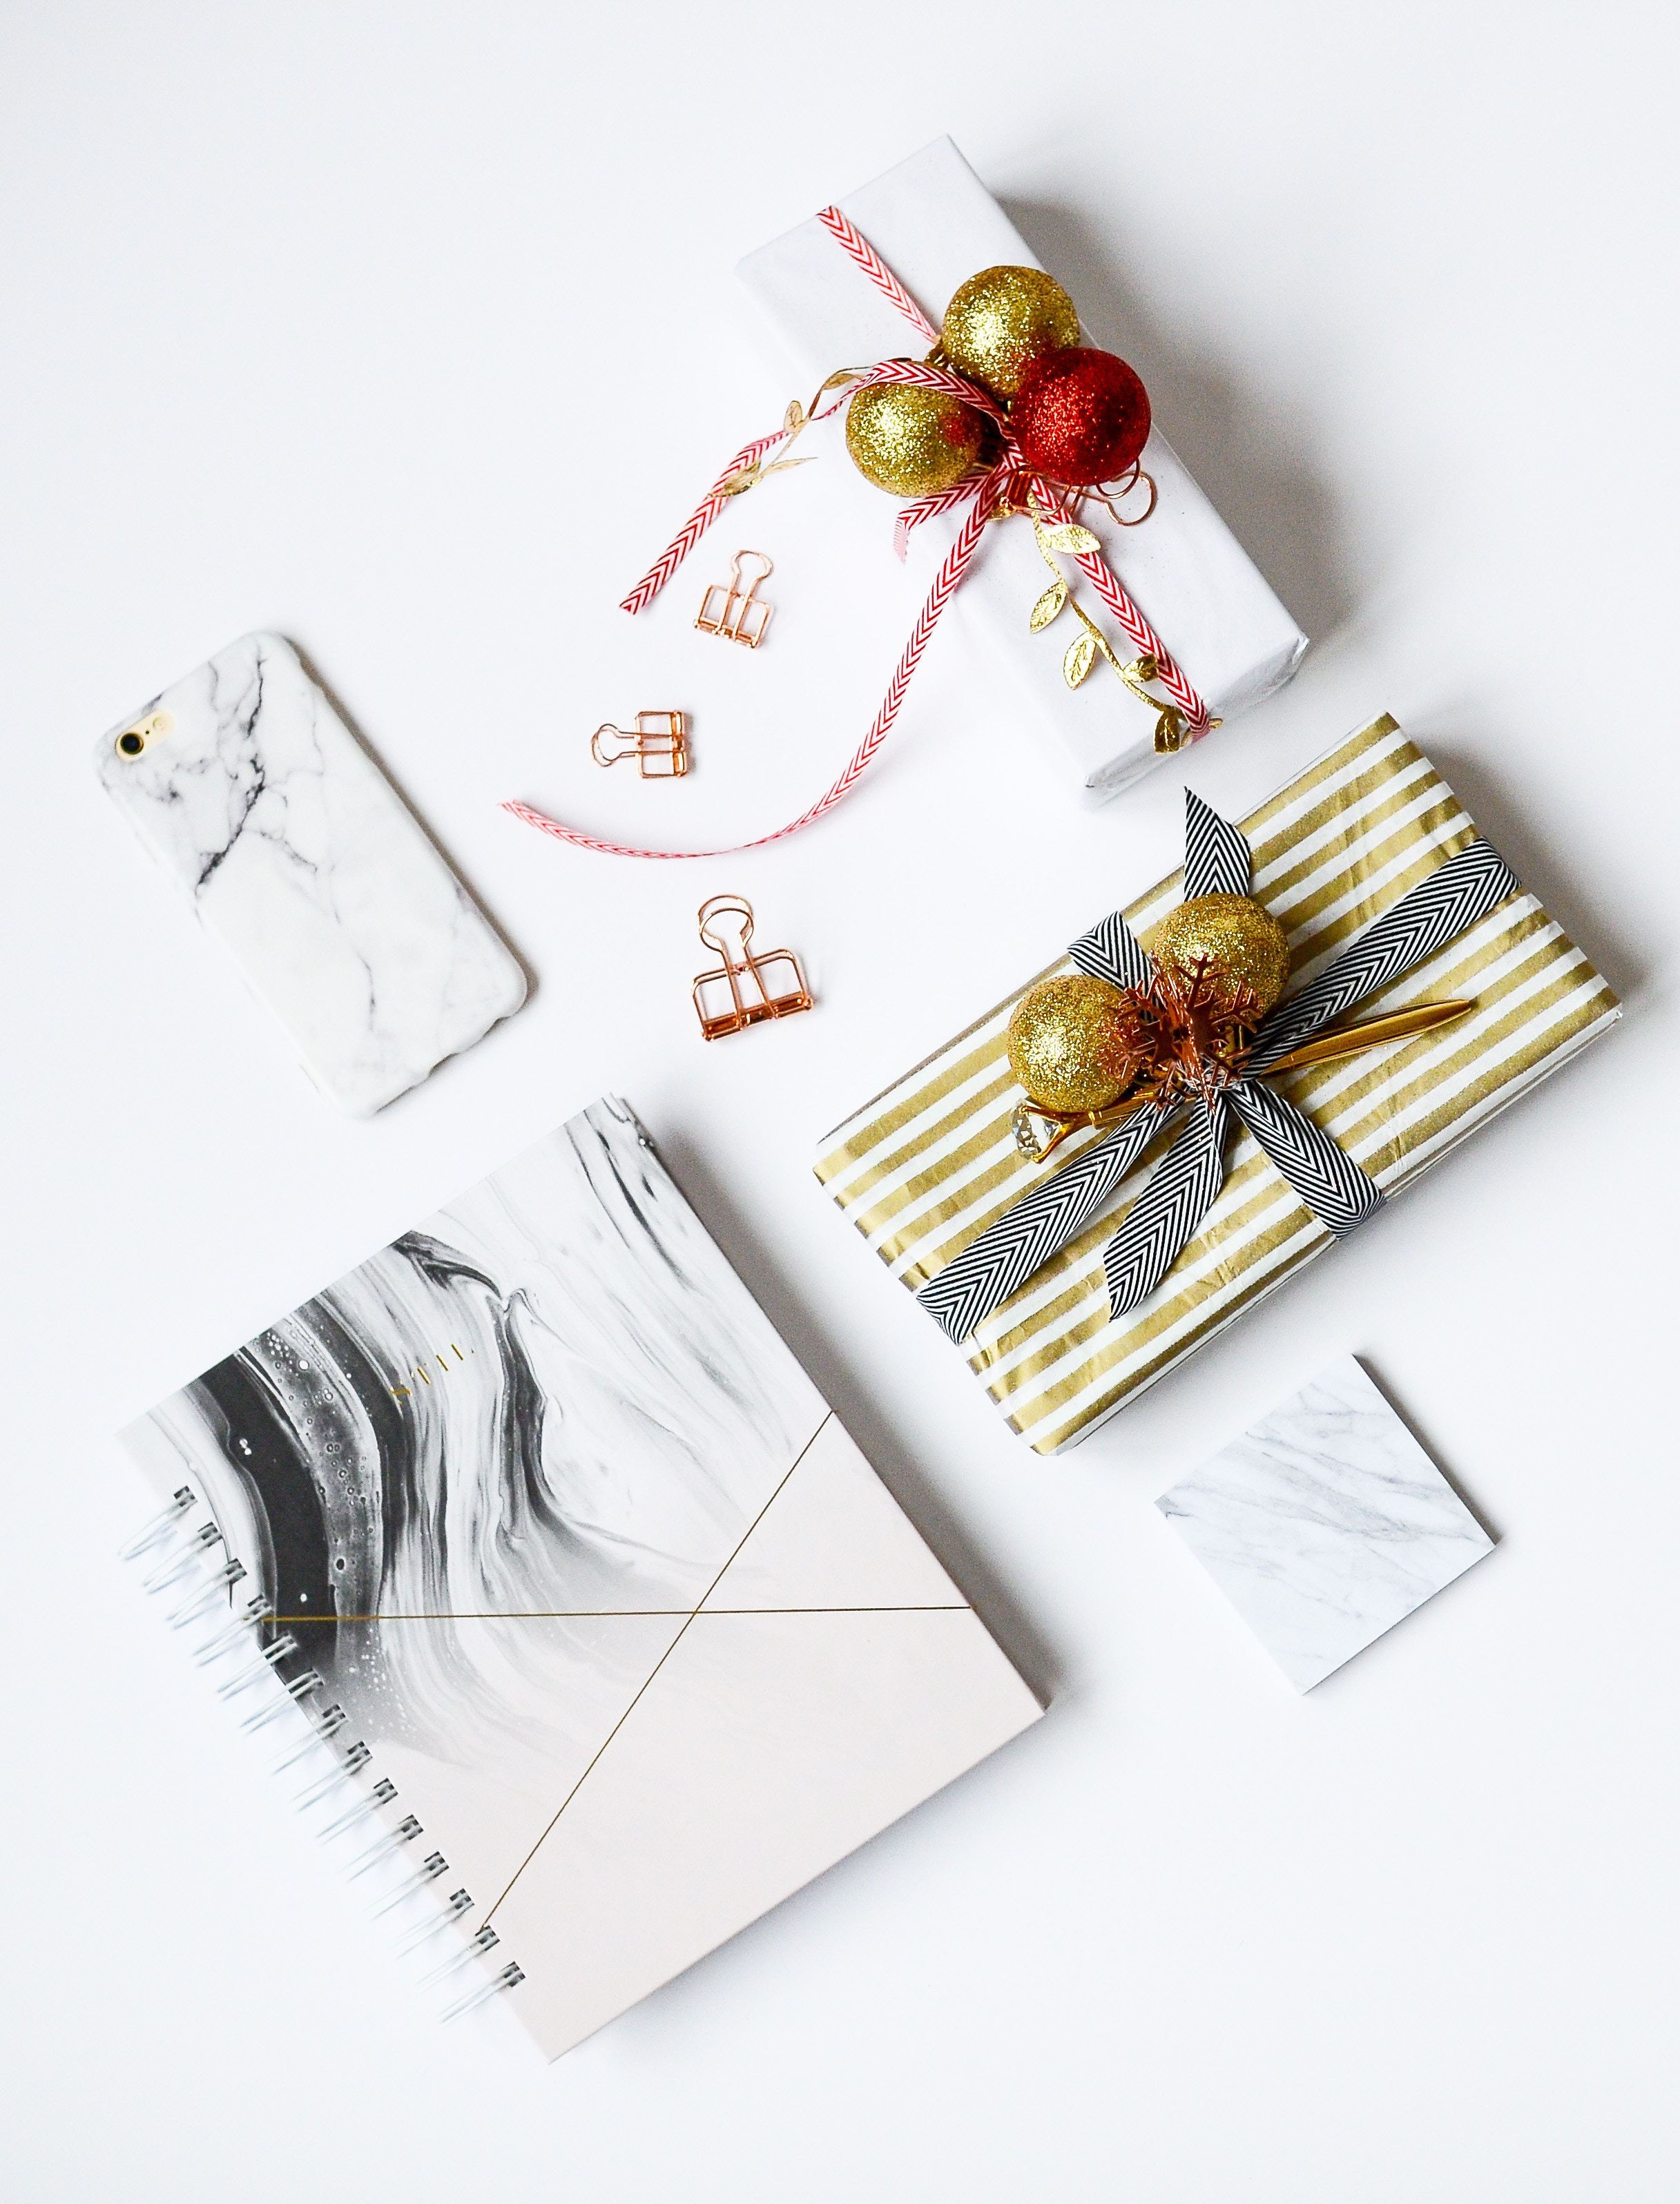 5 health and well-being tips for the holiday season